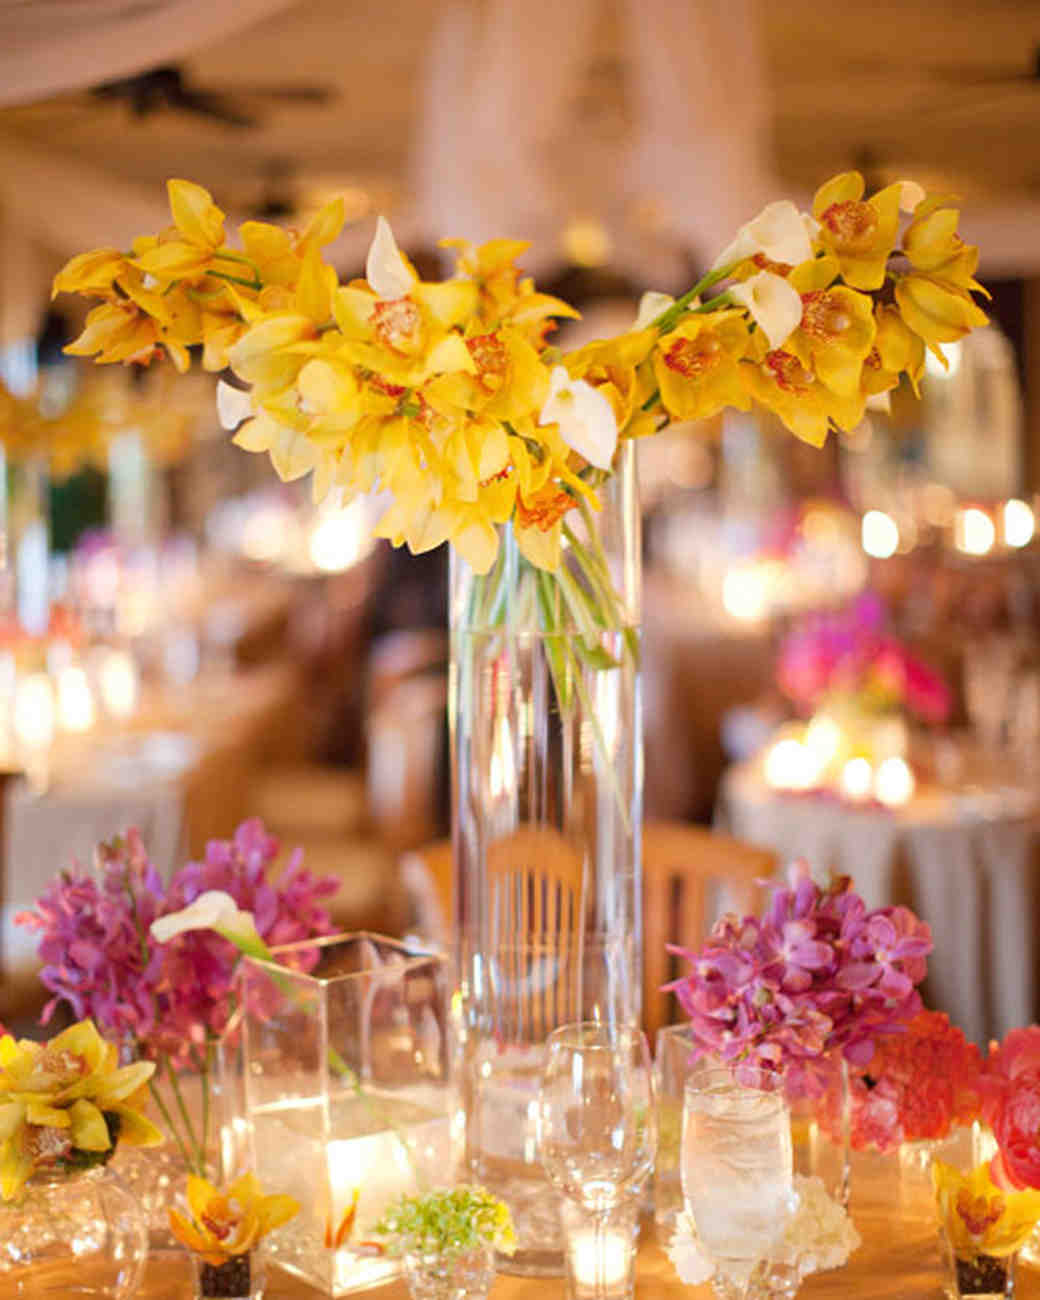 Wedding Flower Arrangements: Glamorous Wedding Centerpieces